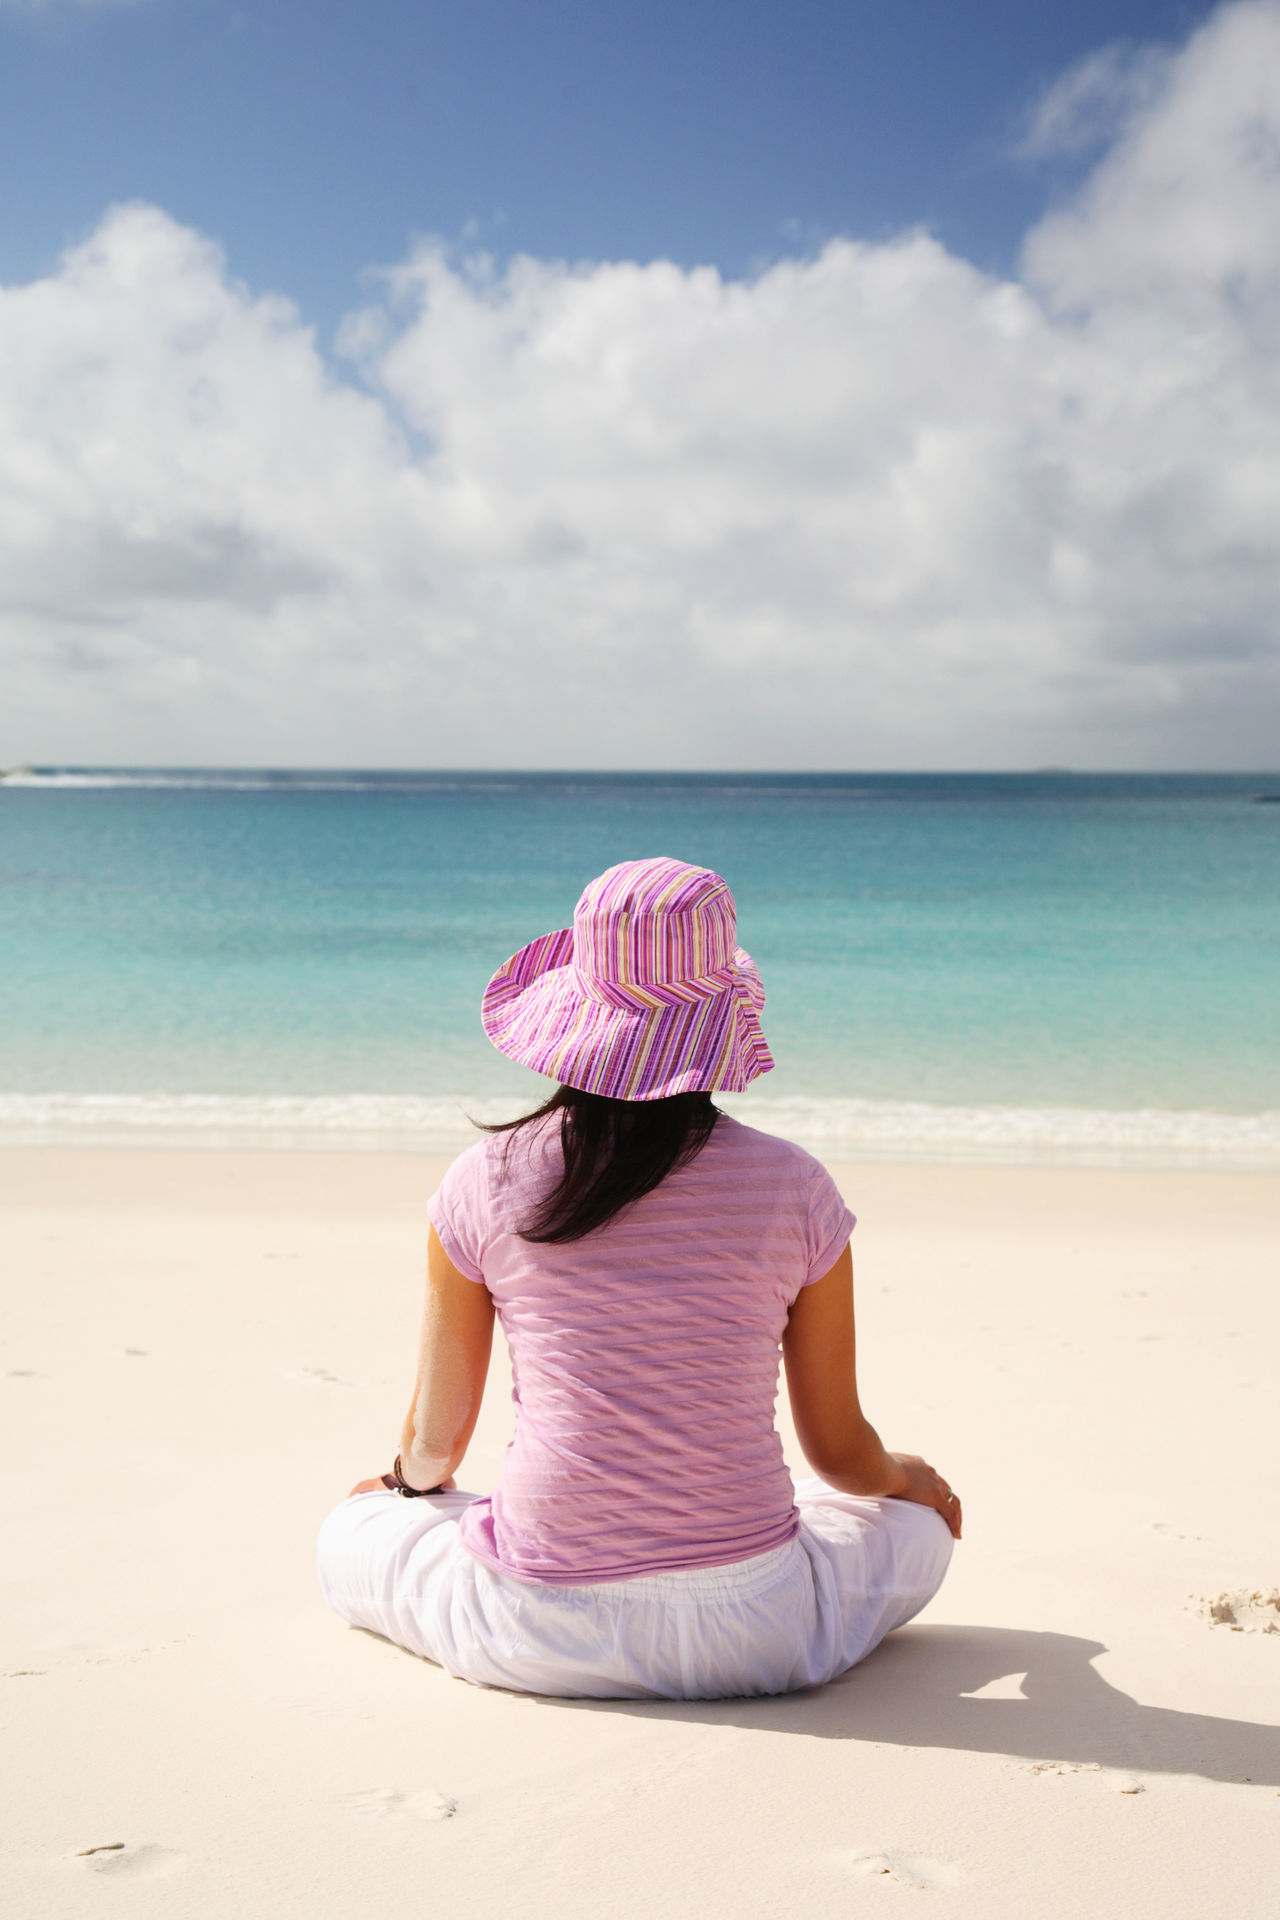 Adult Adults Only Beach Day Horizon Over Water Human Body Part One Person One Woman Only Outdoors People Rear View Sand Sea Sitting Sky Vacations Women